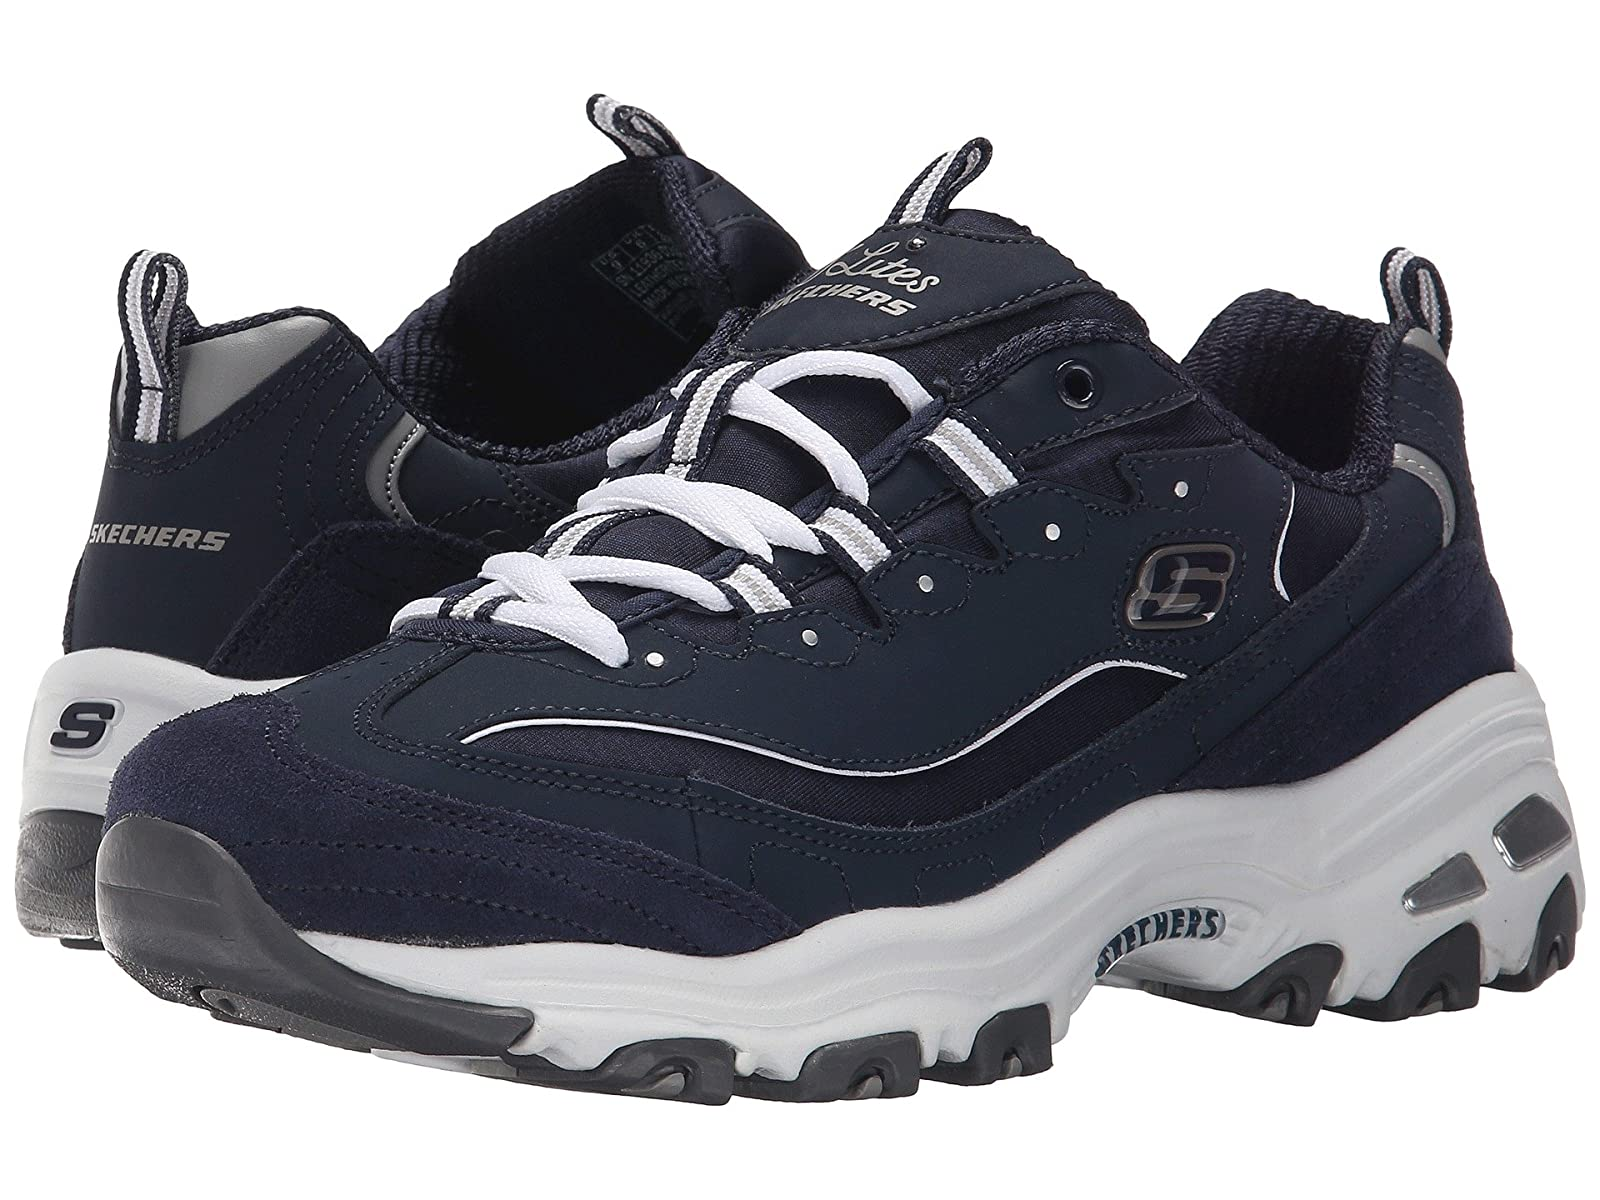 SKECHERS D'Lites - Me TimeCheap and distinctive eye-catching shoes